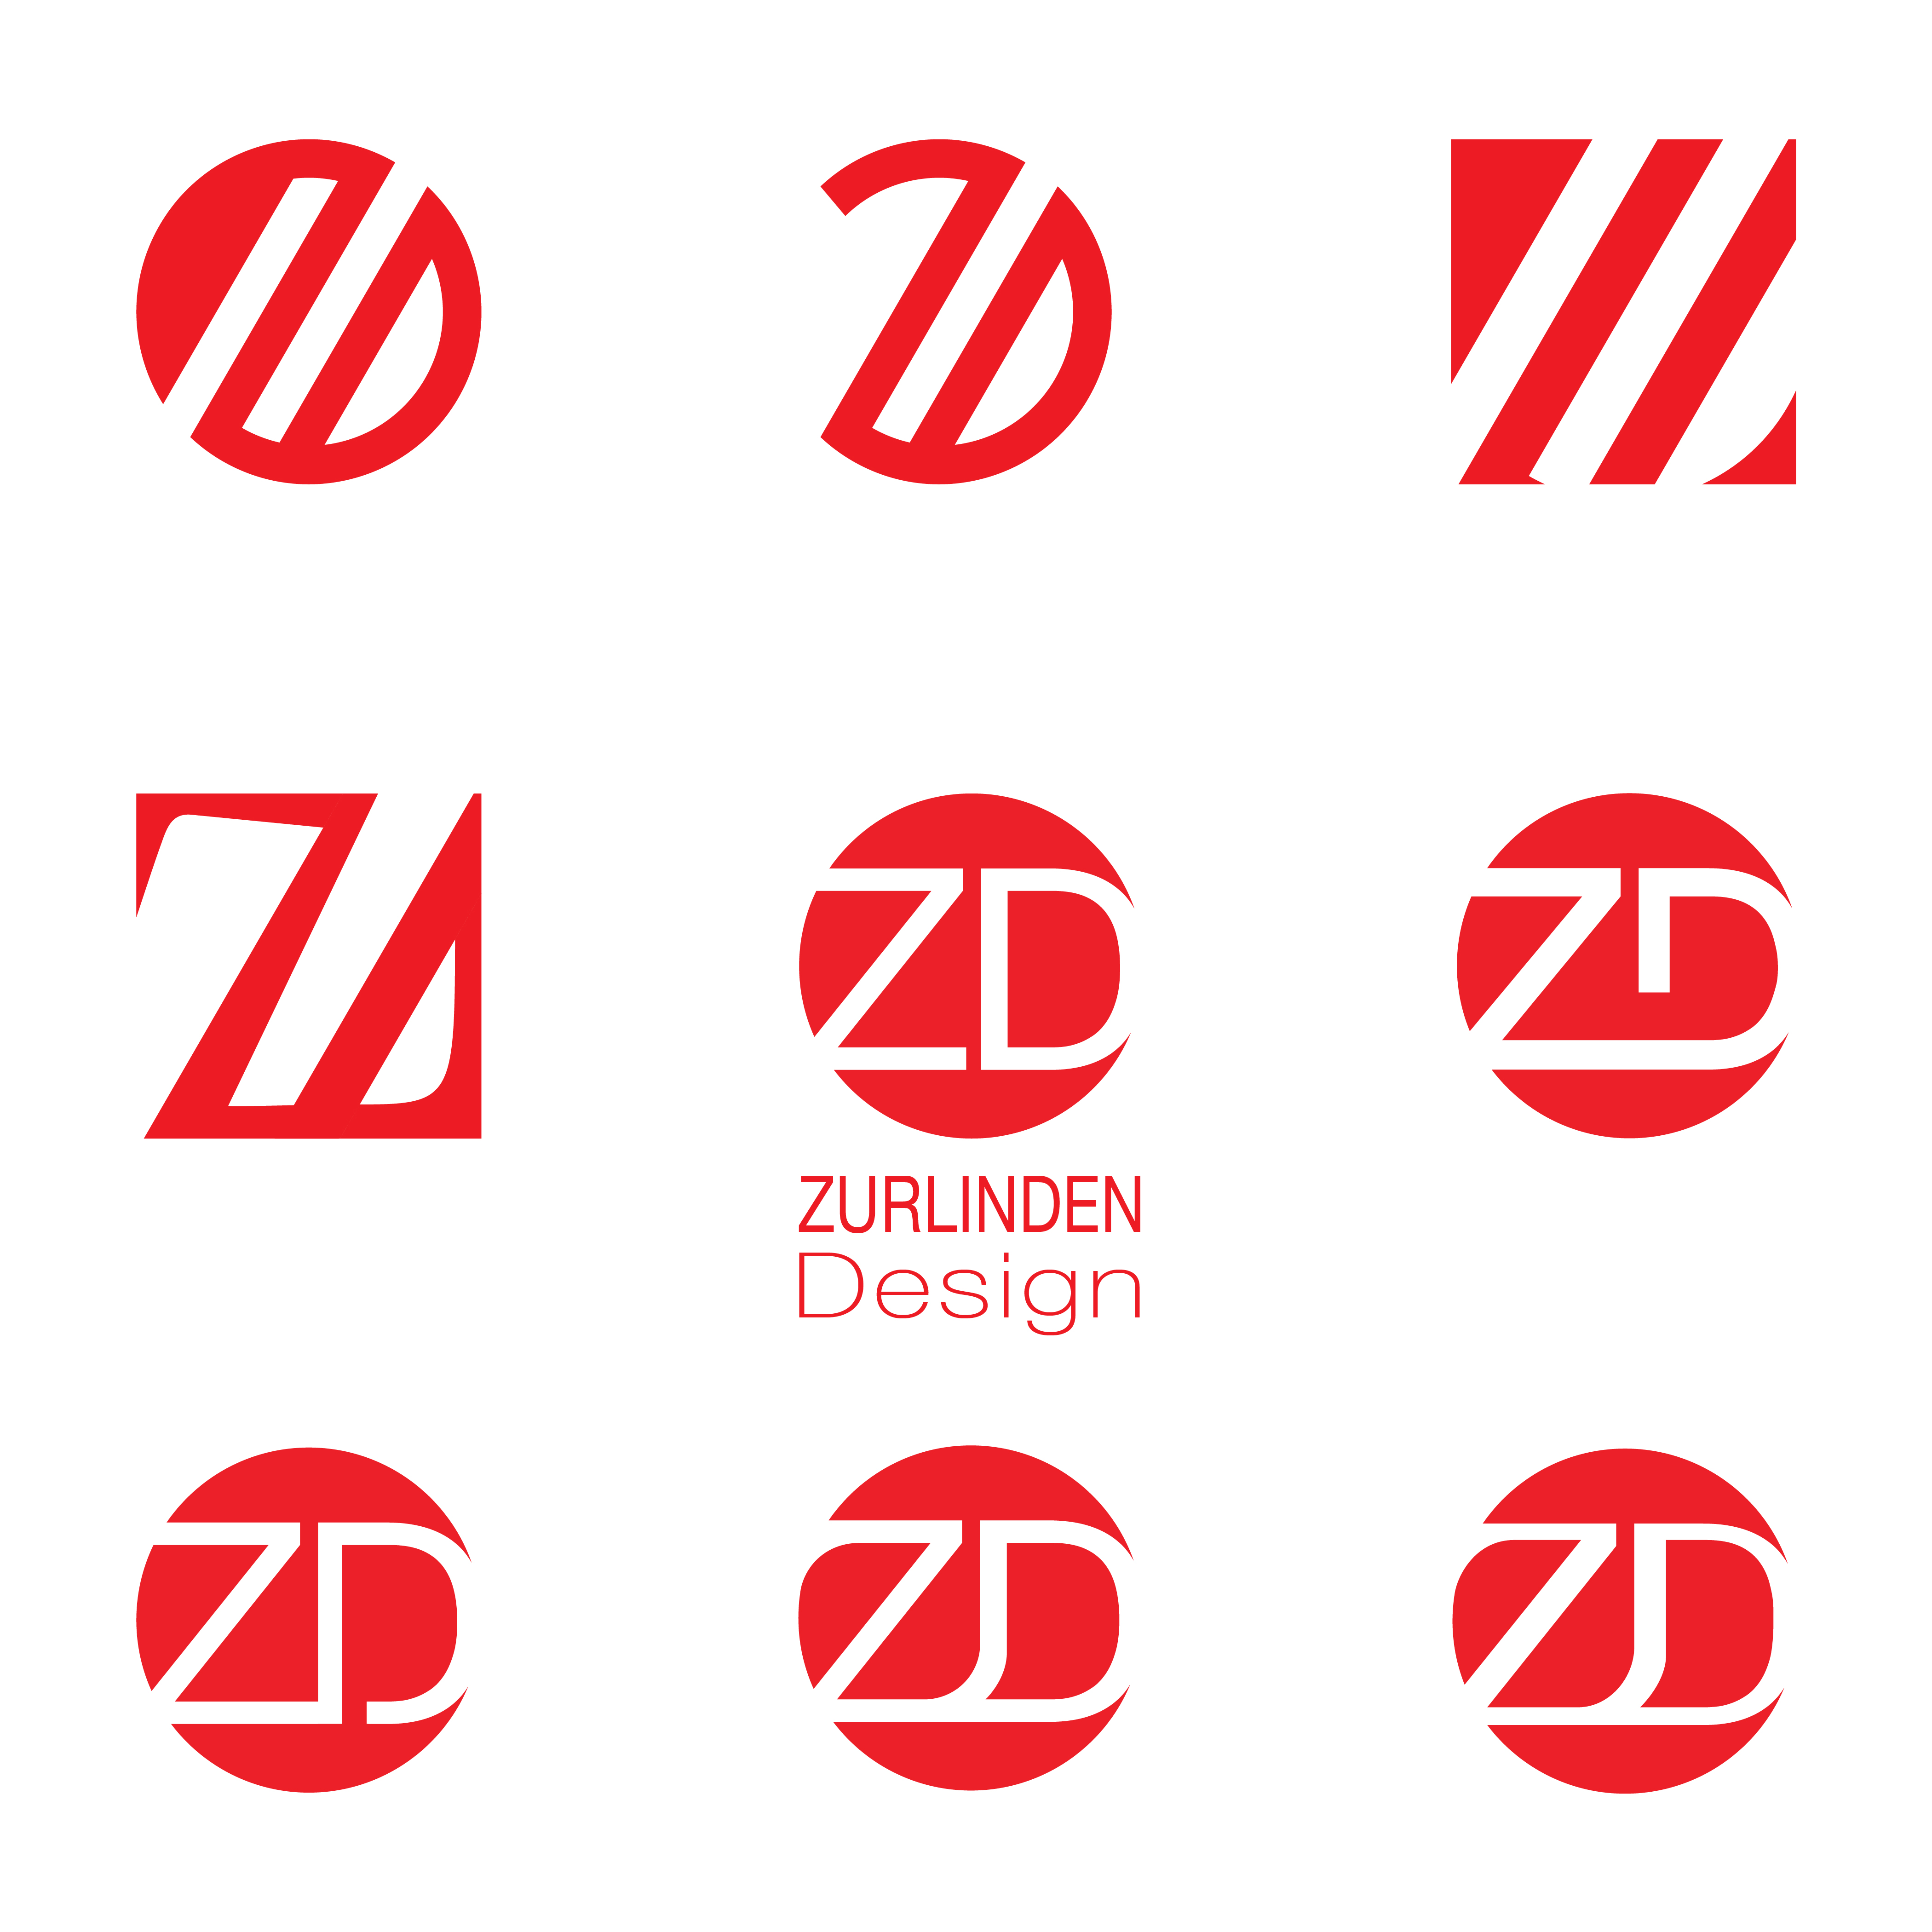 Zurlinden Design Logo Concepts